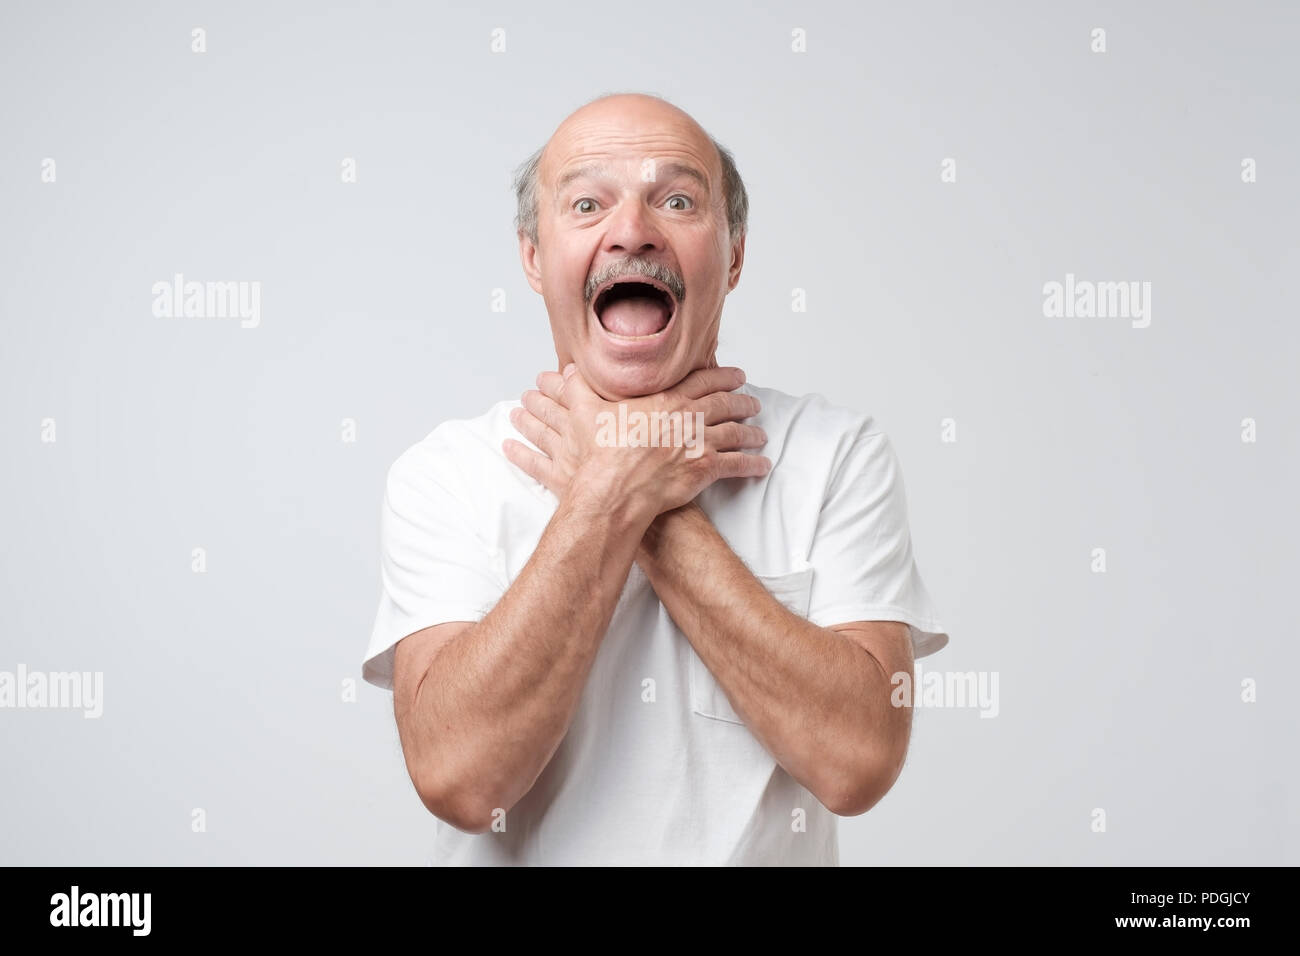 Mature european man in white tshirt shouting and suffocate because painful strangle. Health problem. Asphyxiate and breathing problem concept. - Stock Image